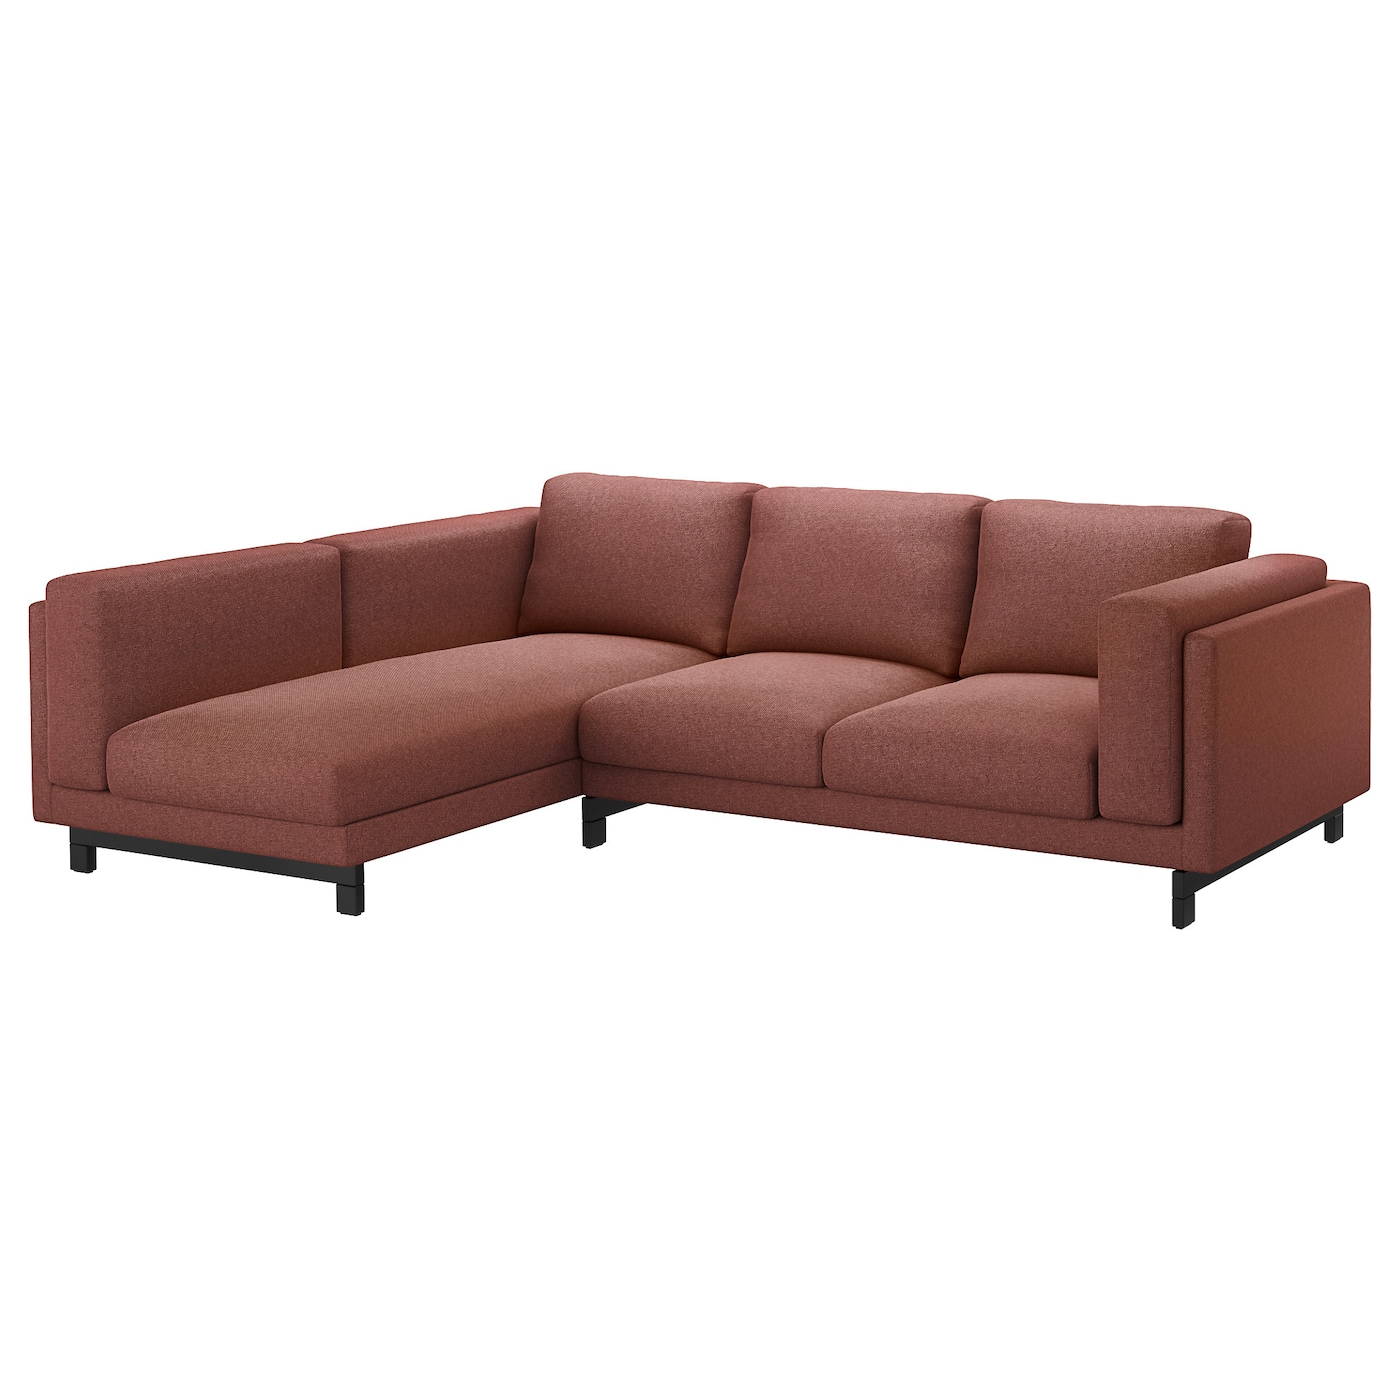 Nockeby two seat sofa w chaise longue left tallmyra rust for Couch with 2 chaises